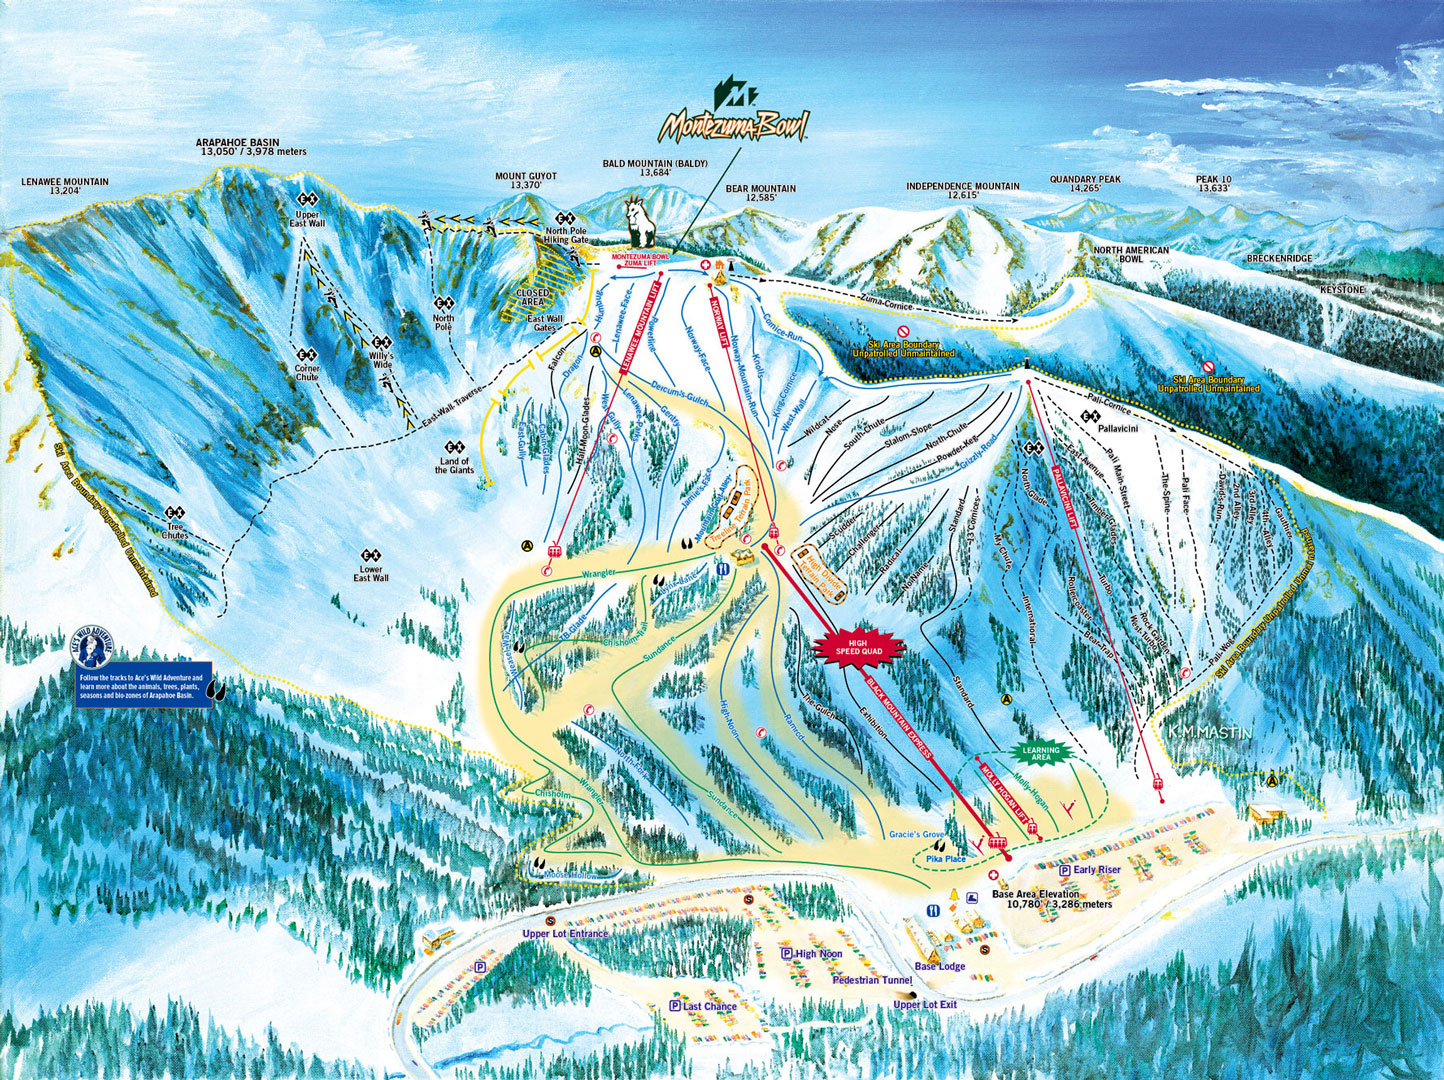 Arapahoe Basin Resort Skiing Snowboarding Colorado Vacation